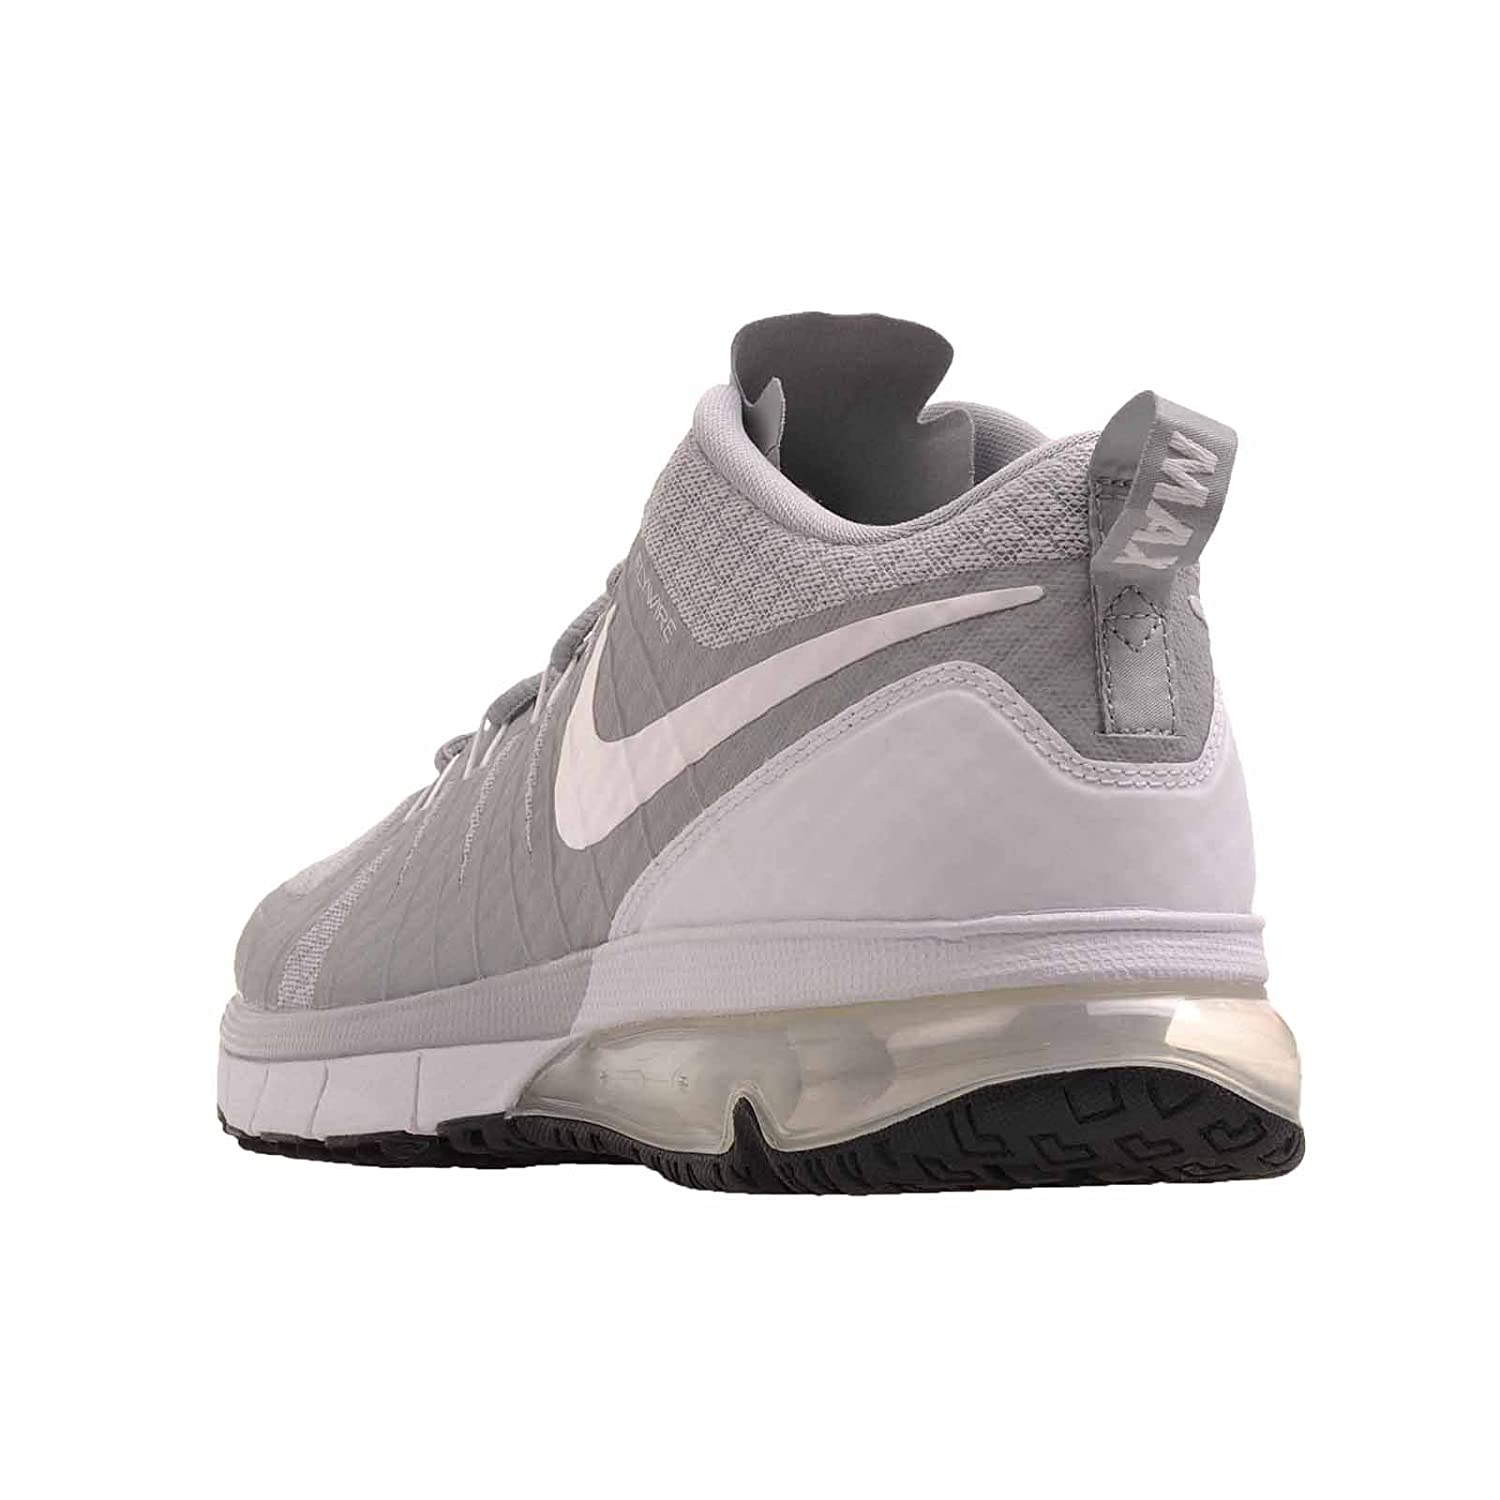 Air Max Tr 180 Scarpe Da Cross-training Nike Uomo 78VOcDy7